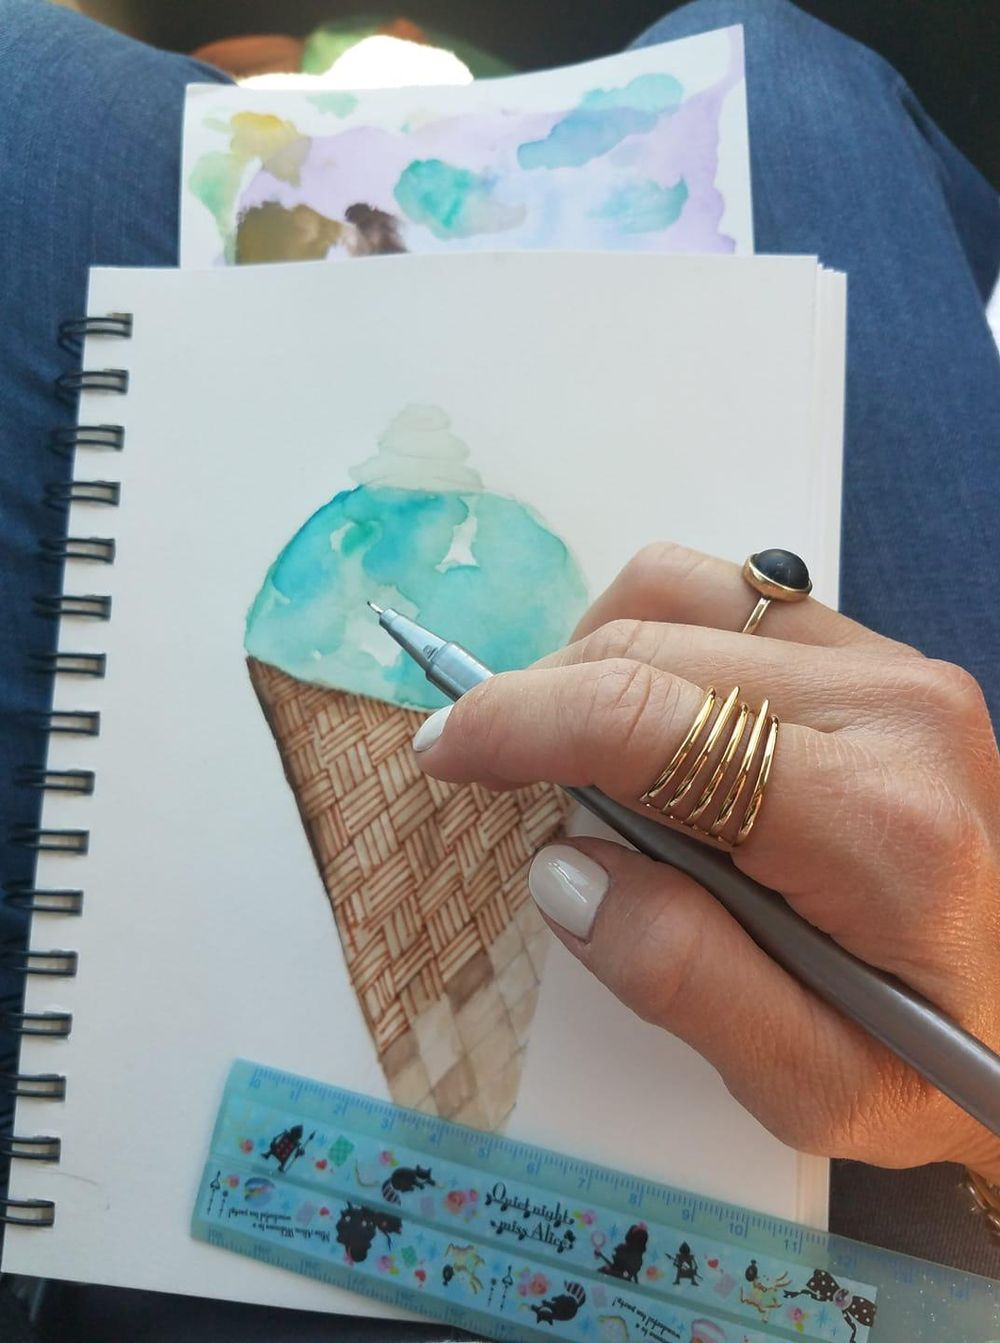 Stylizing with watercolor - image 6 - student project